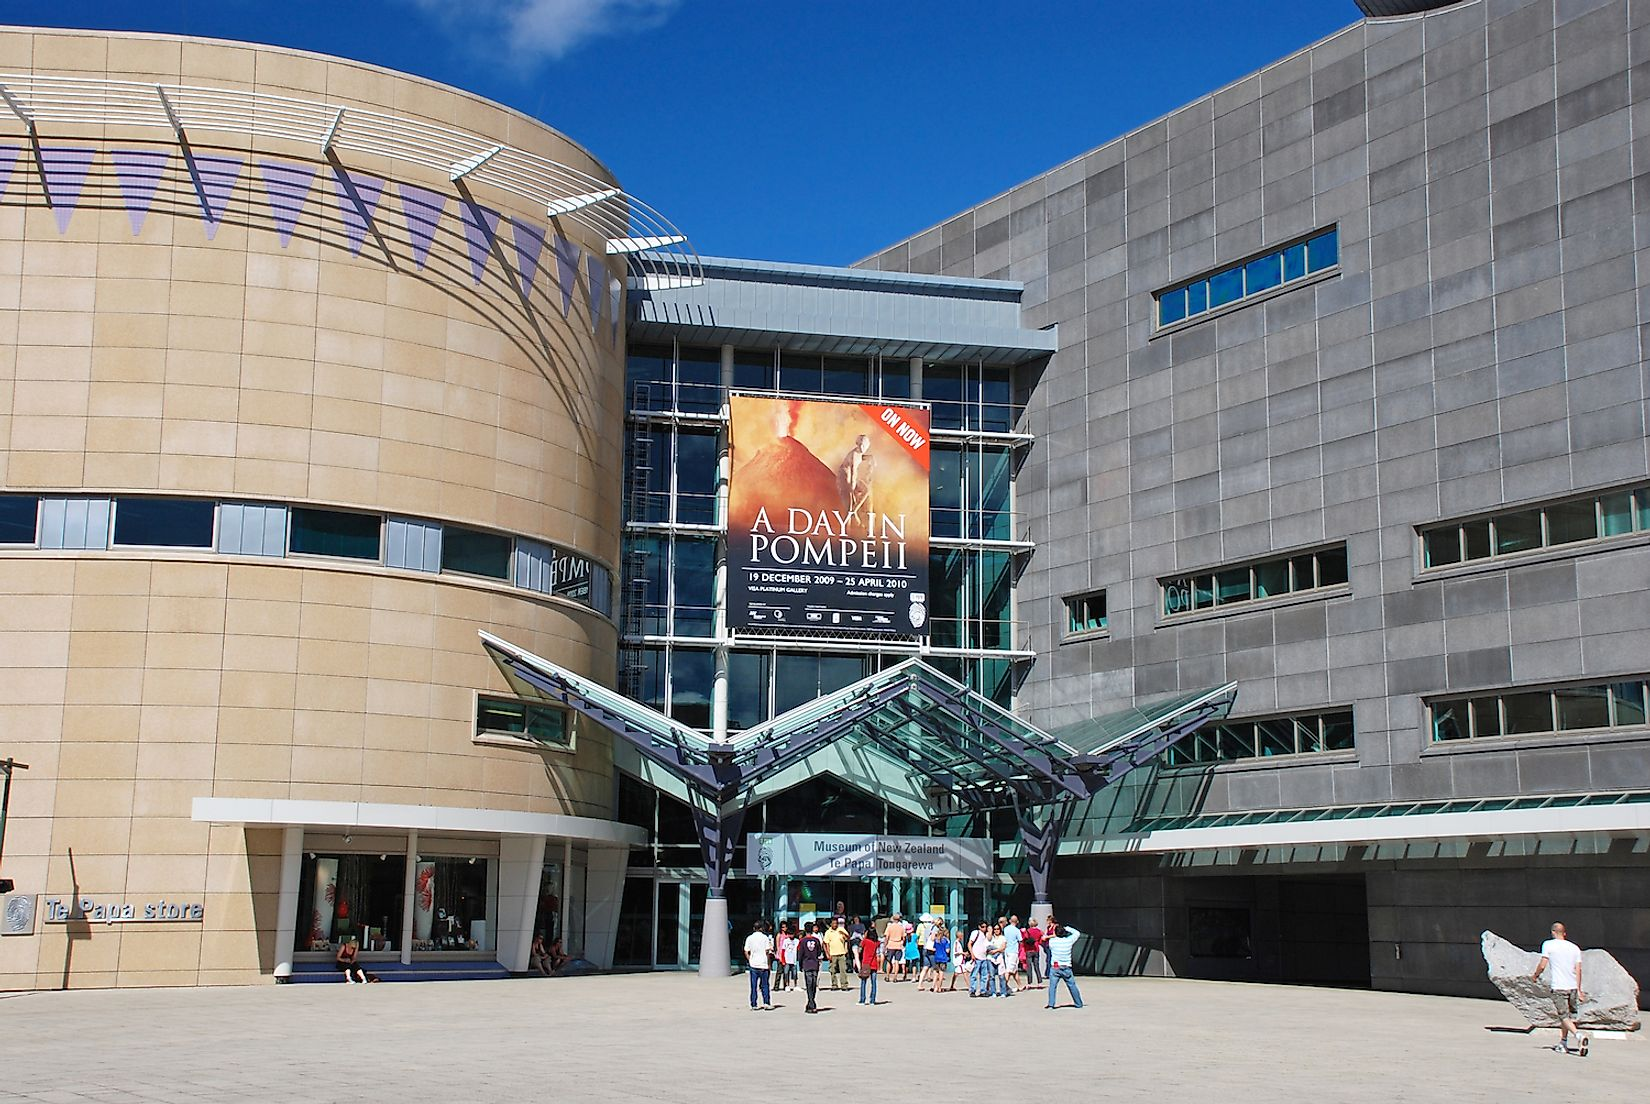 Museum of New Zealand Te Papa Tongarew. Image credit: Jiri Foltyn/Shutterstock.com